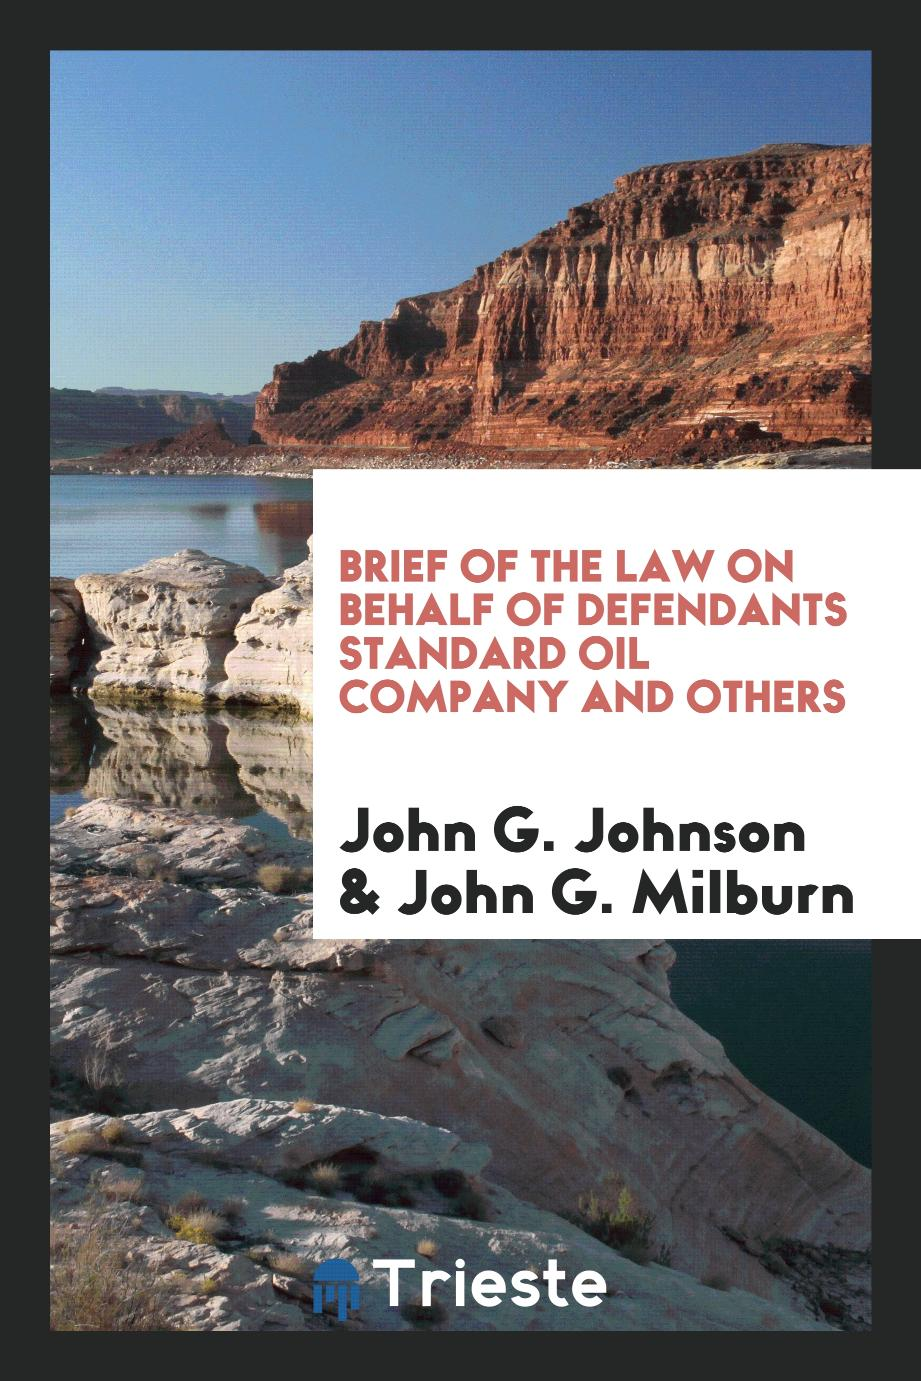 Brief of the Law on Behalf of Defendants Standard Oil Company and others